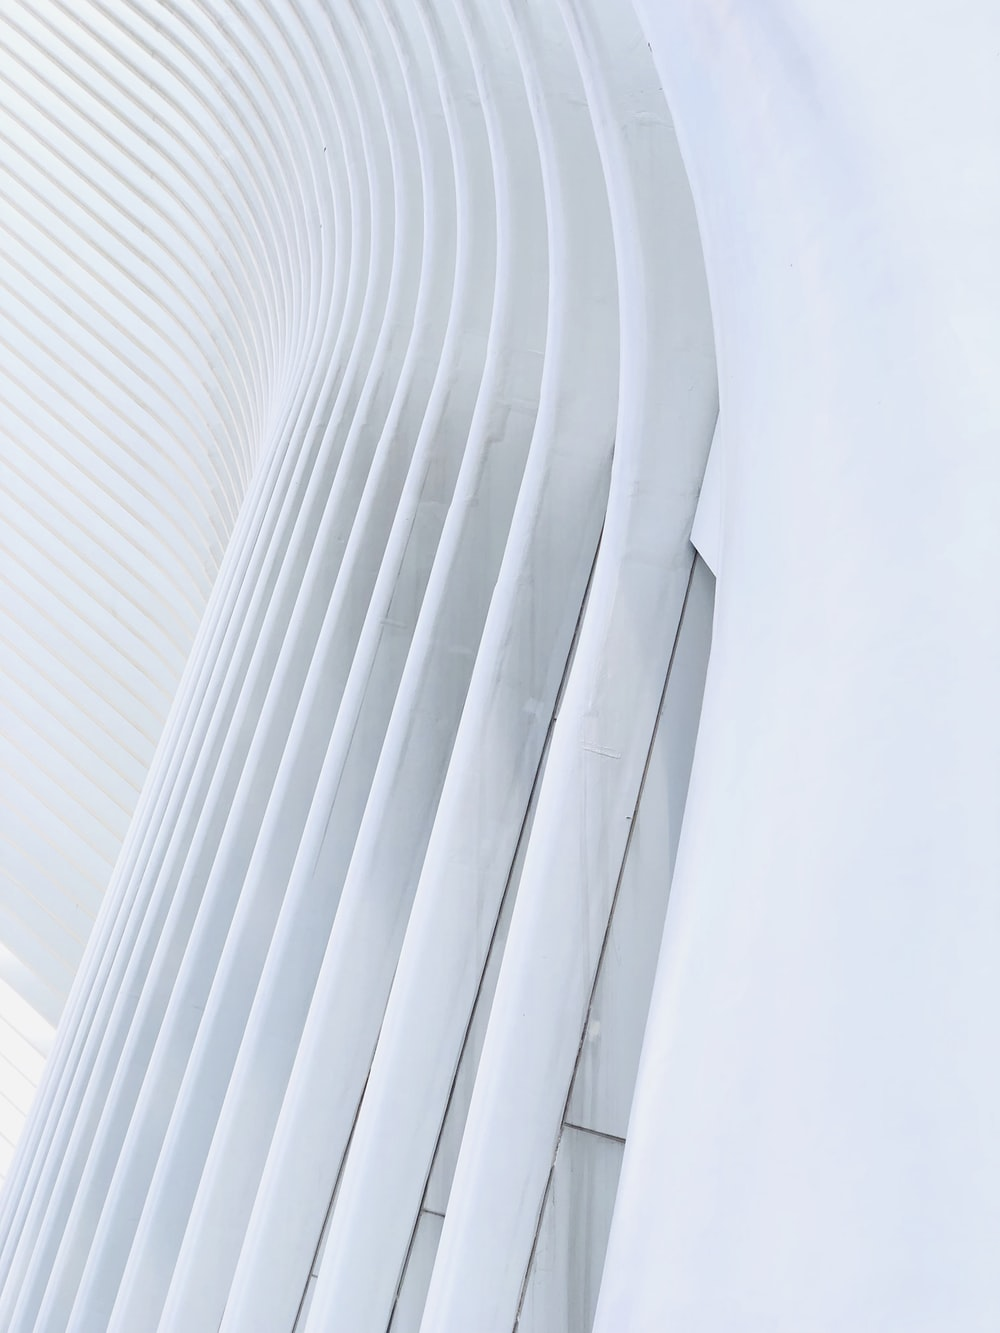 architectural photo of a white building